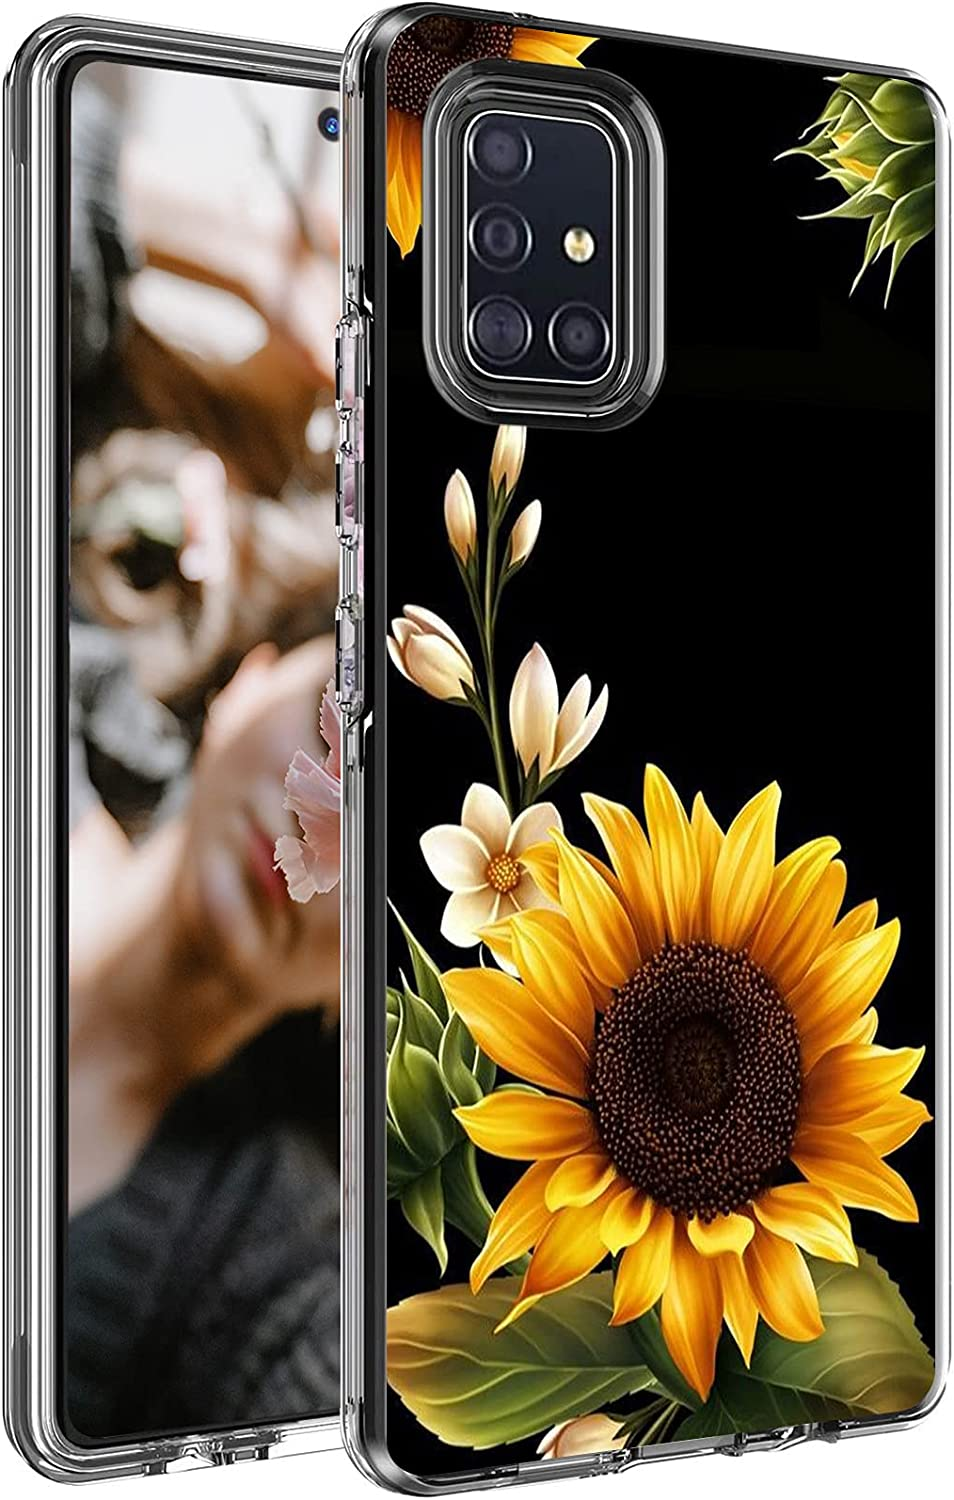 Case for Samsung Galaxy A71 5G 6.7 Inch, Shock-Absorption Flexible TPU Bumper Slim Dual Layer Hybrid Protective Cover Clear with Pattern for Girls Men Women, Sunflower